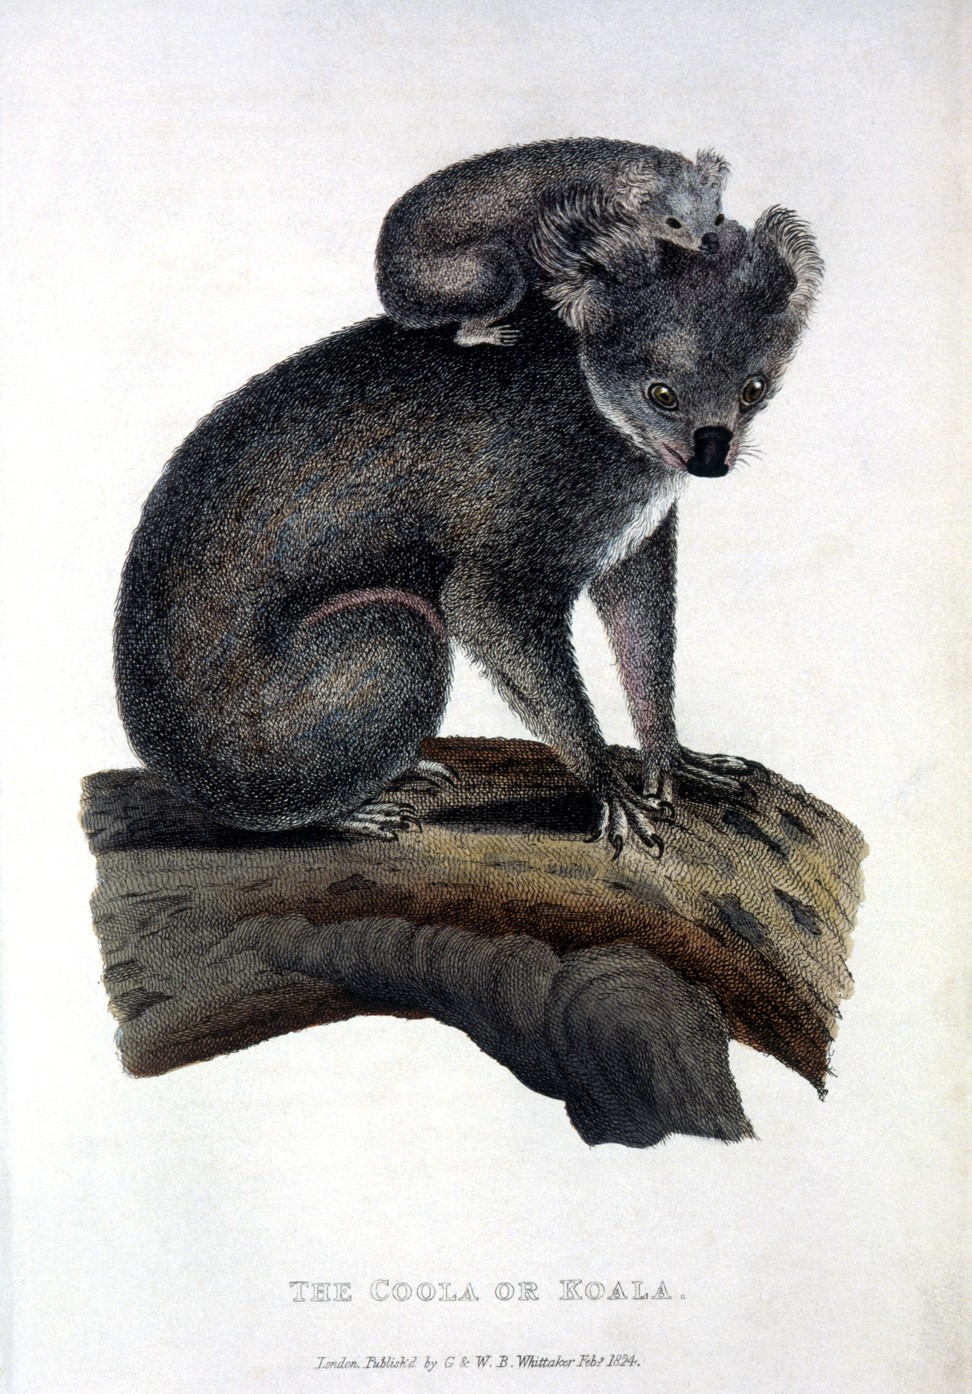 The Aboriginal origins of the word koala, the marsupial often incorrectly called a bear